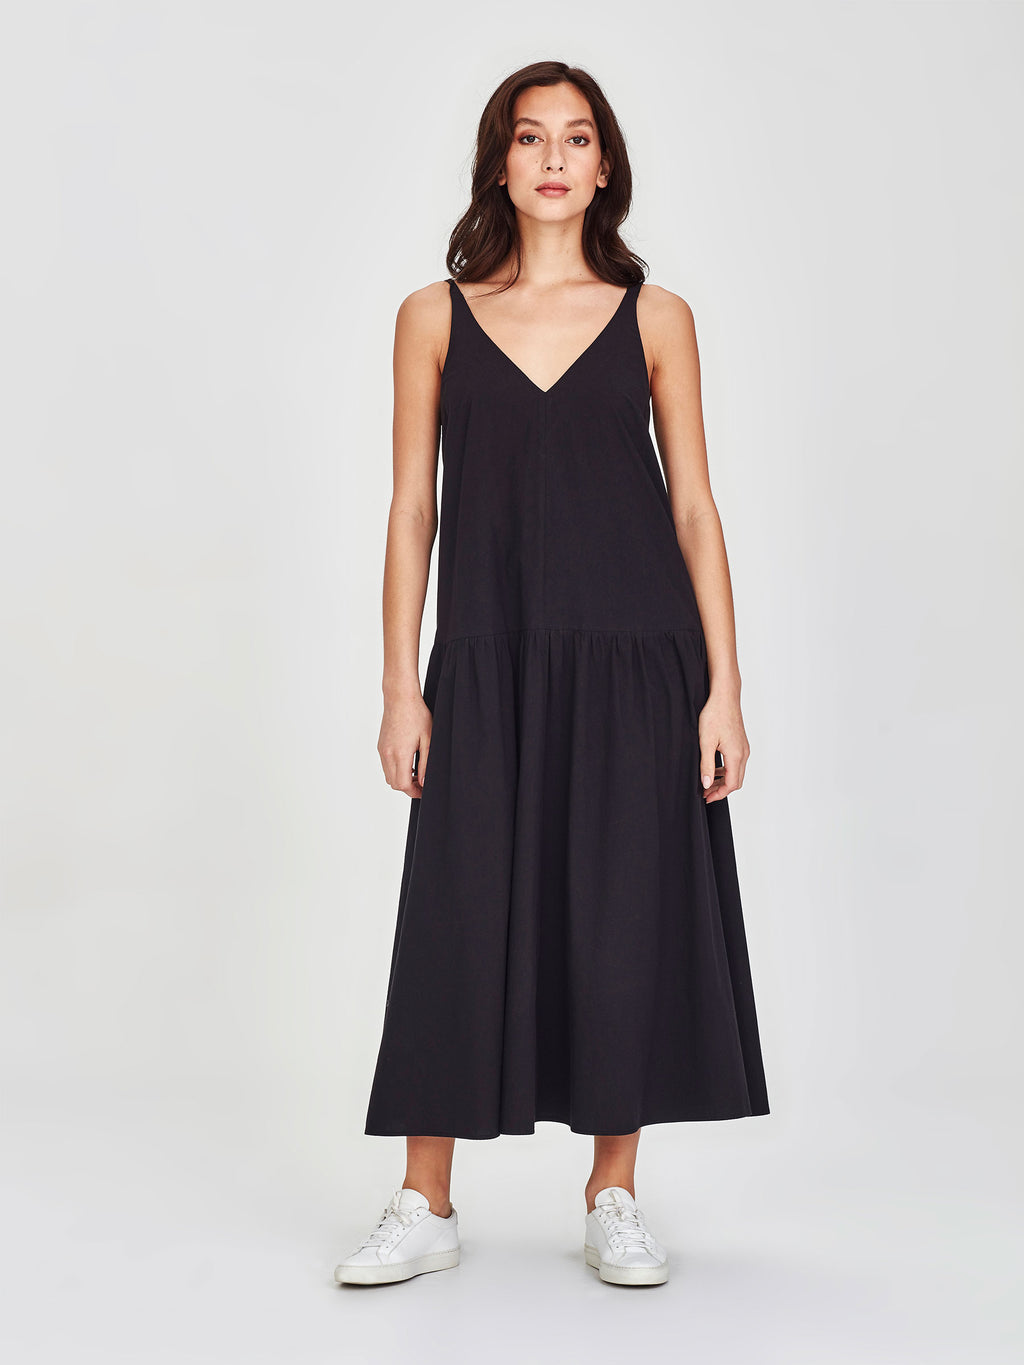 Verona Dress (Washed Cotton) Black